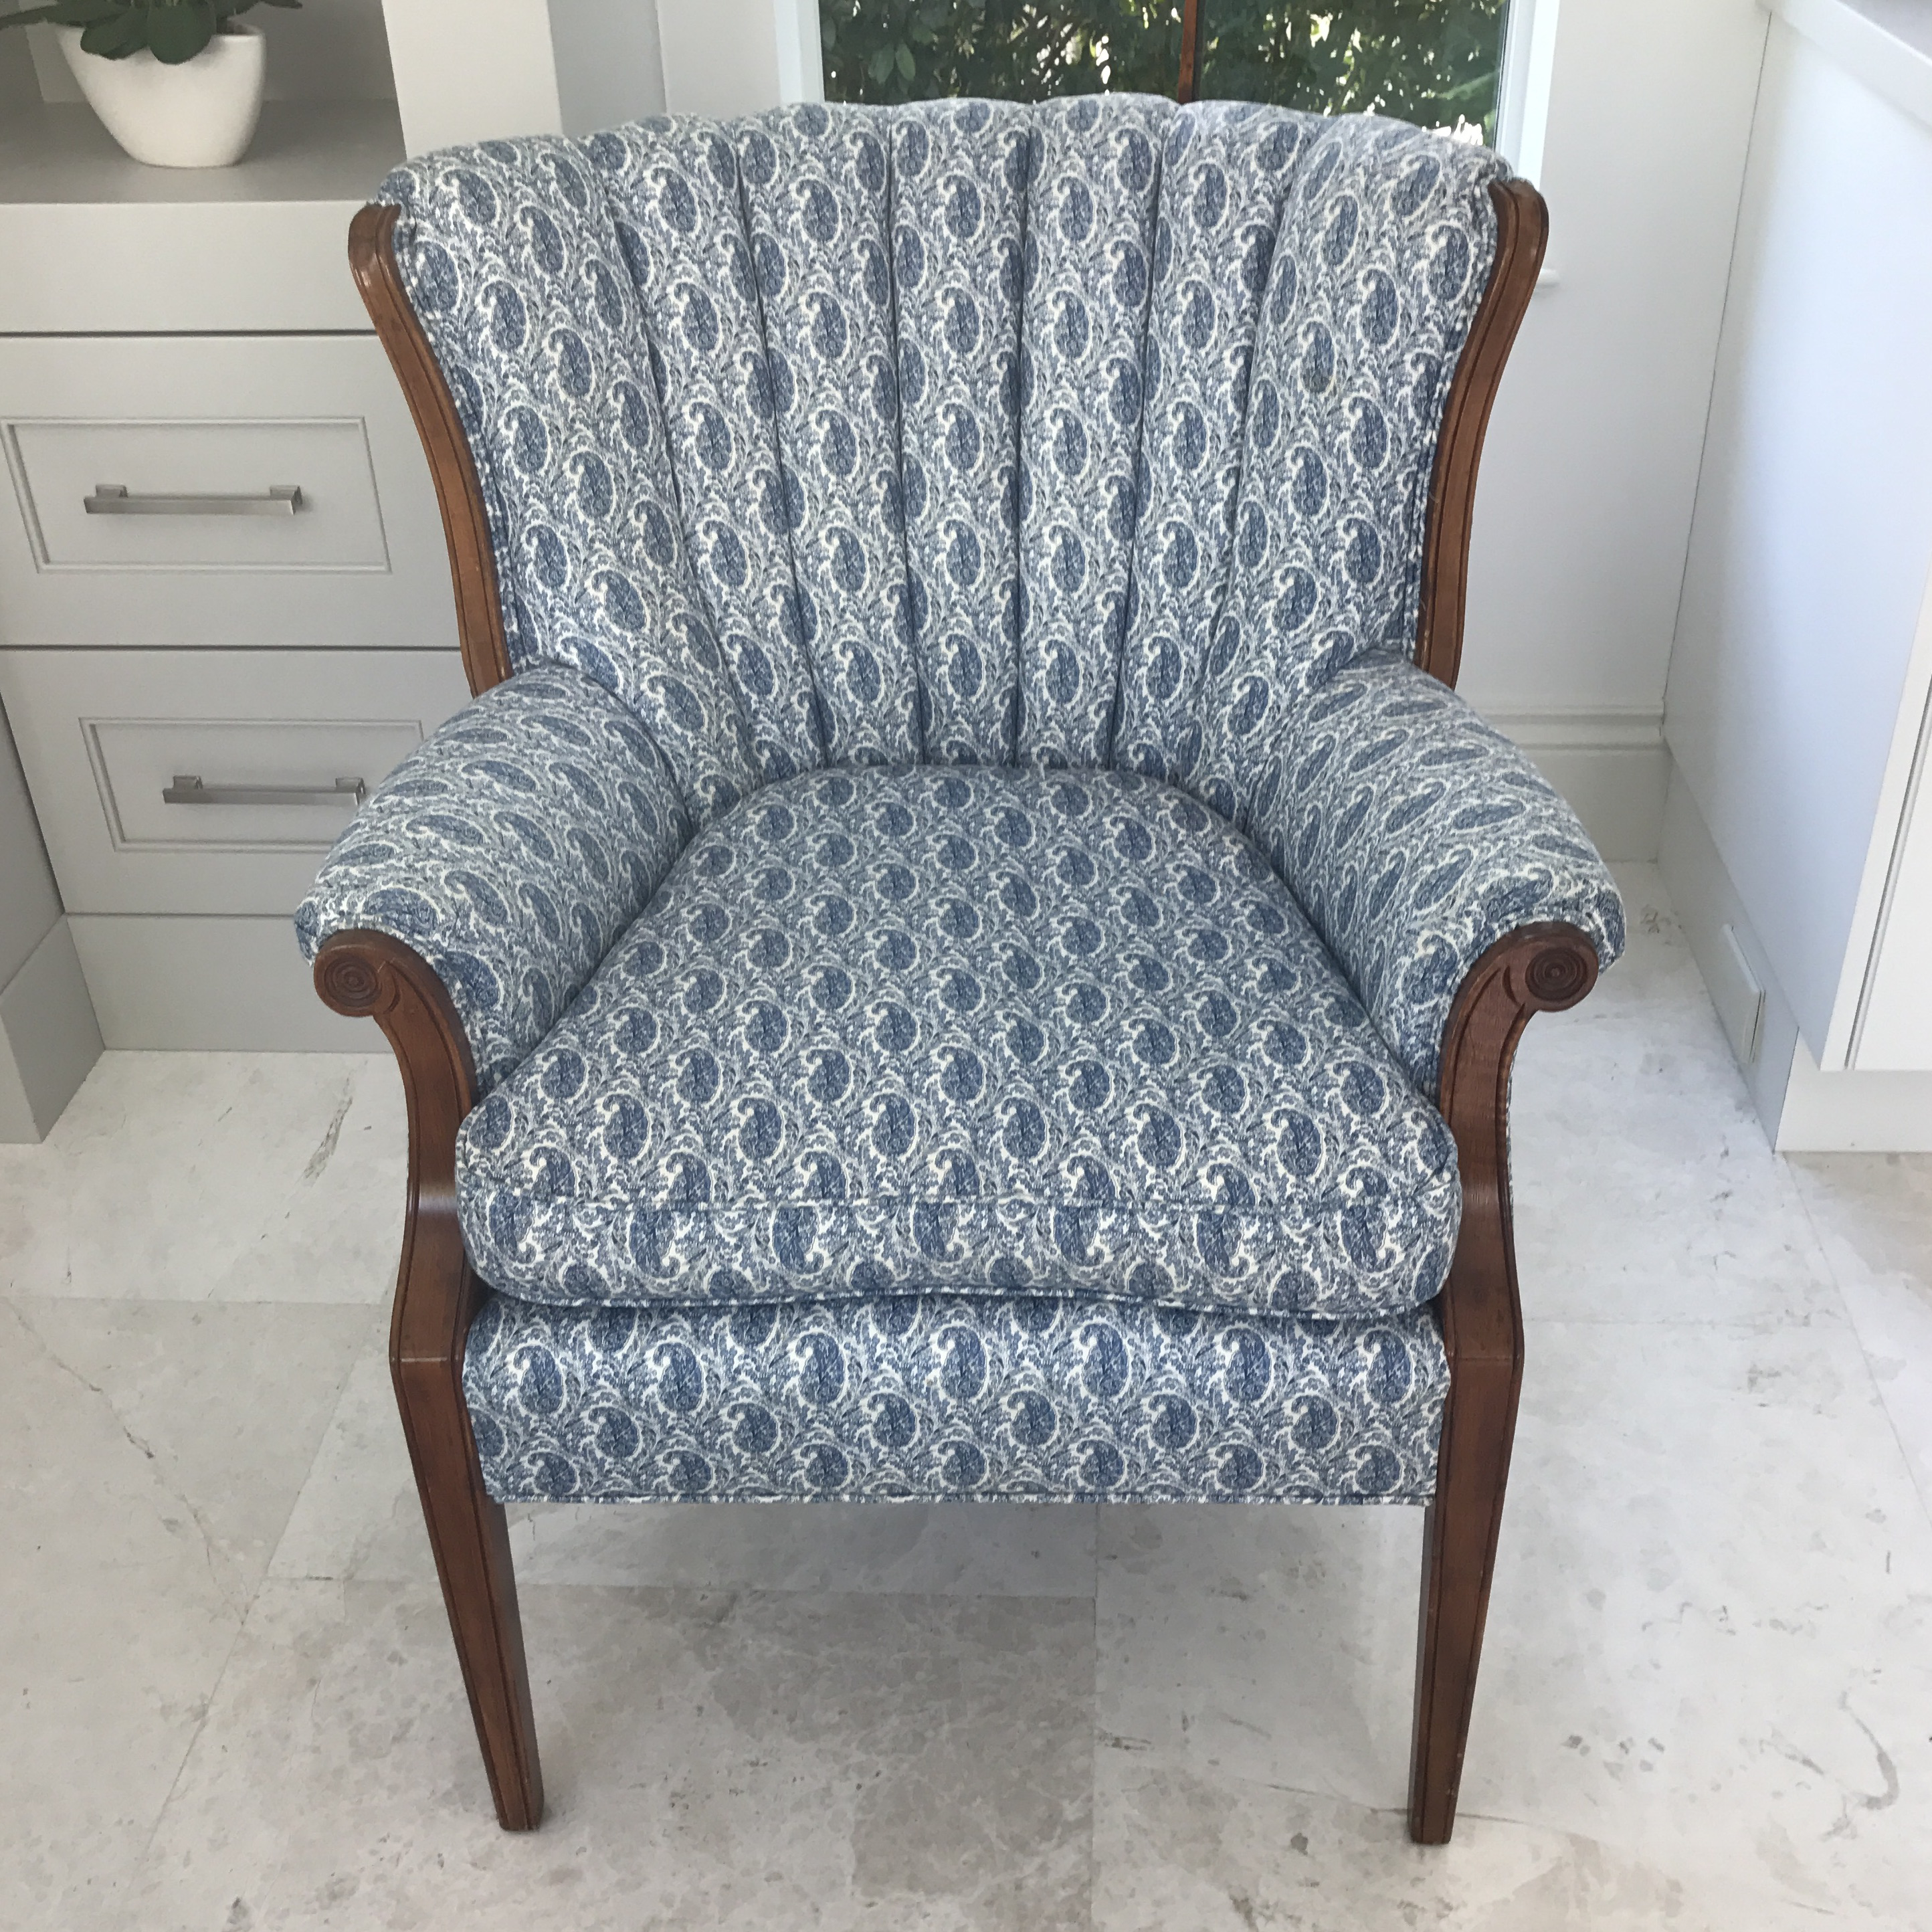 Lovely Blue Paisley Upholstered Arm Chair. Petite In Stature; A Lovely  Accent Chair For